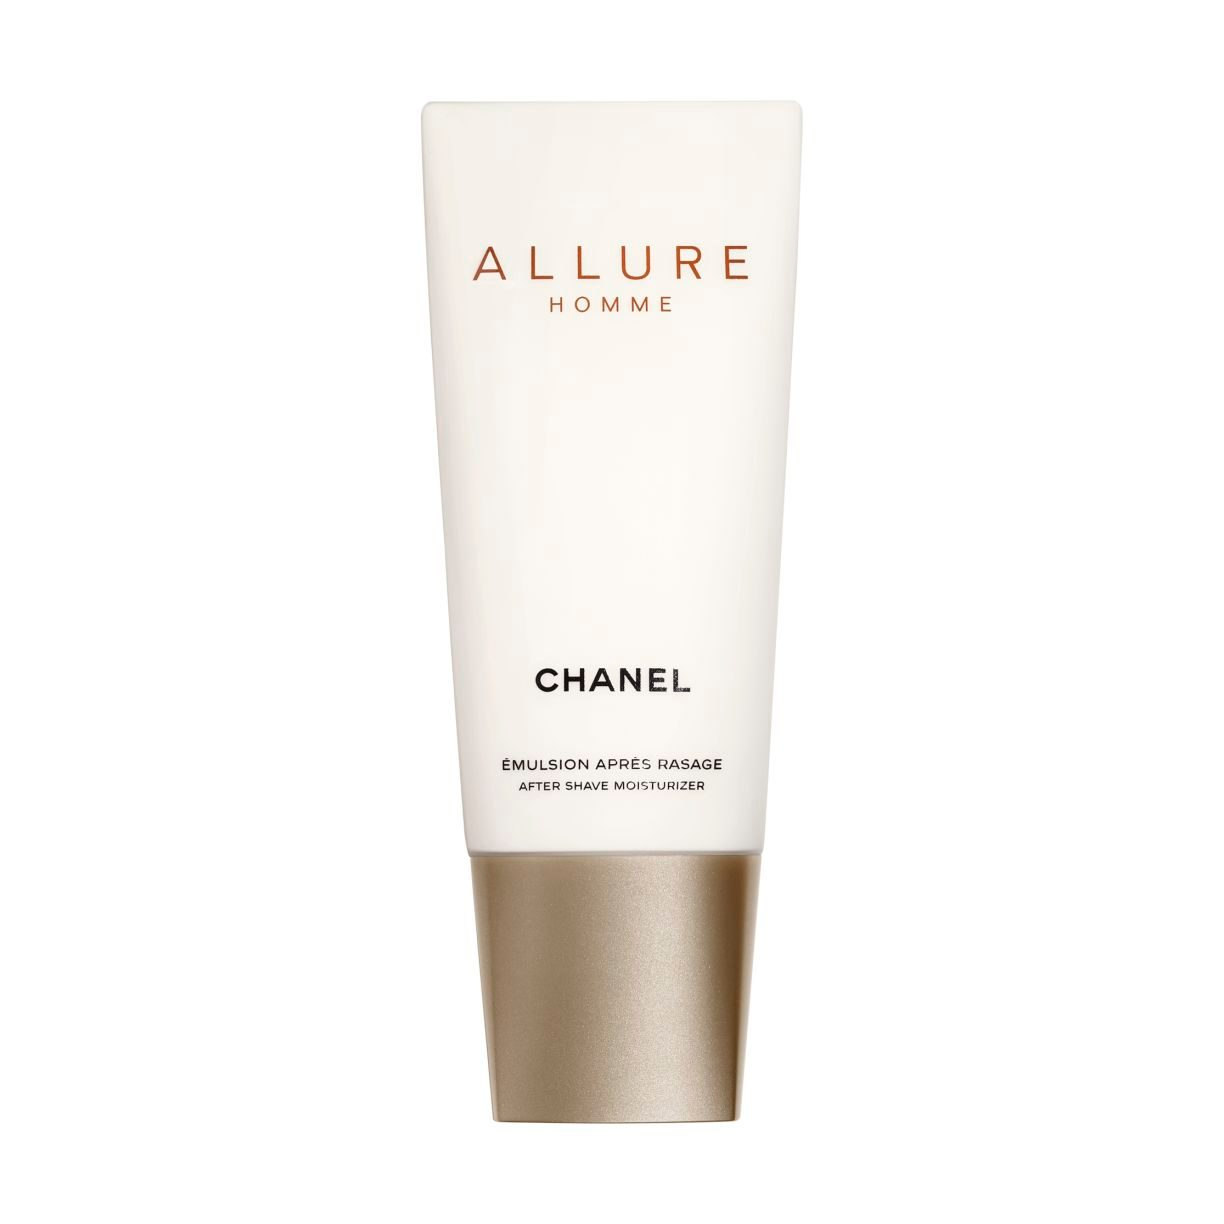 ALLURE HOMME AFTER SHAVE EMULSION